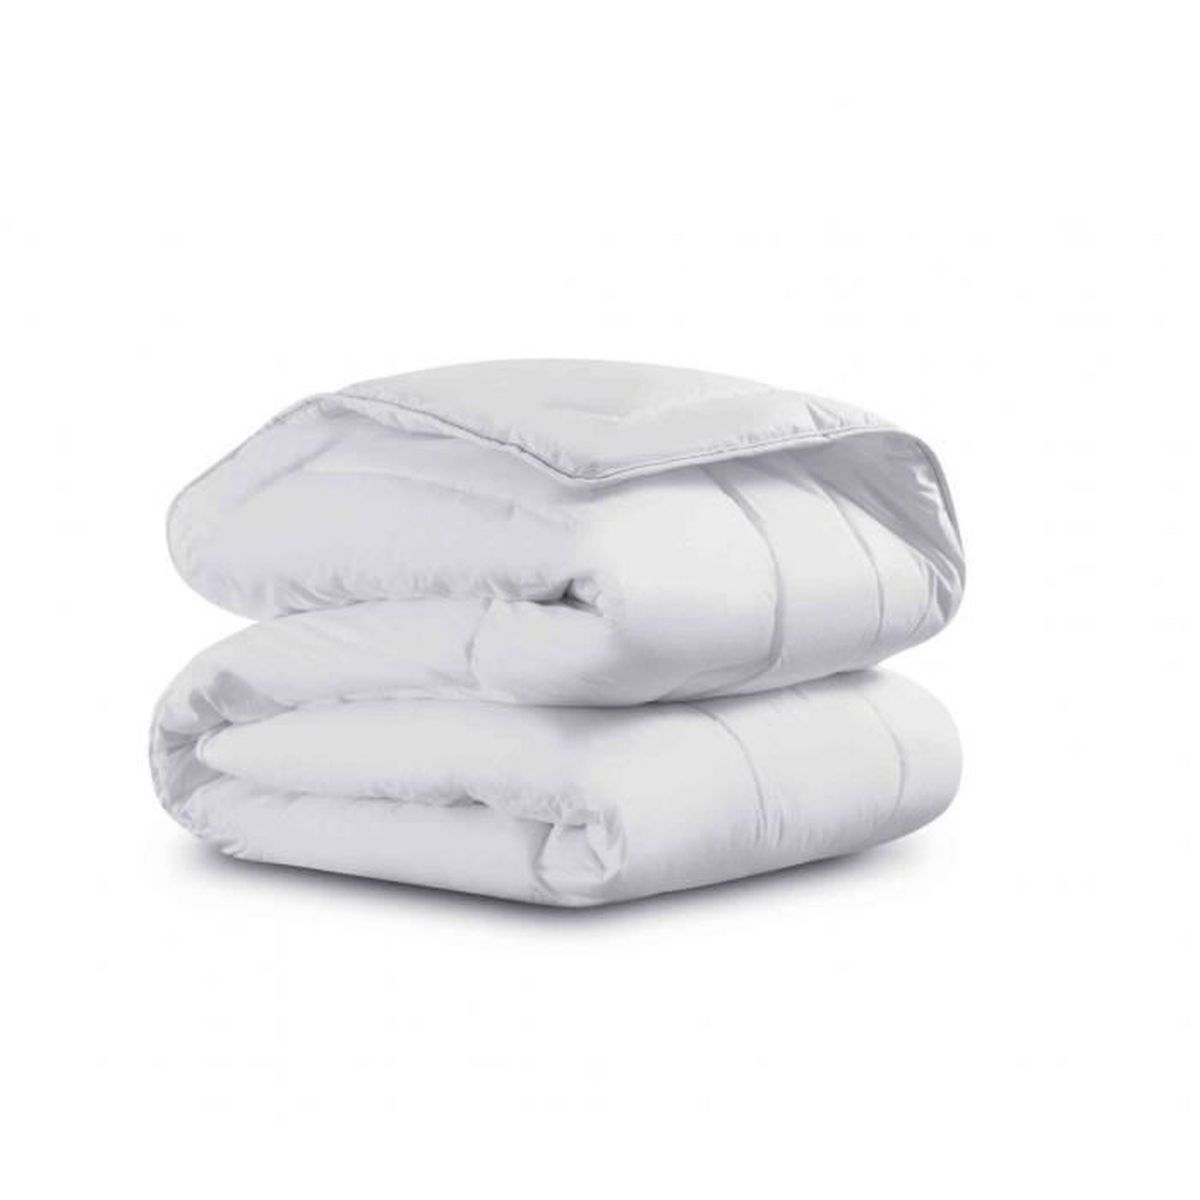 COUETTE Couette Simmons enveloppe percale 4 saisons 350g -